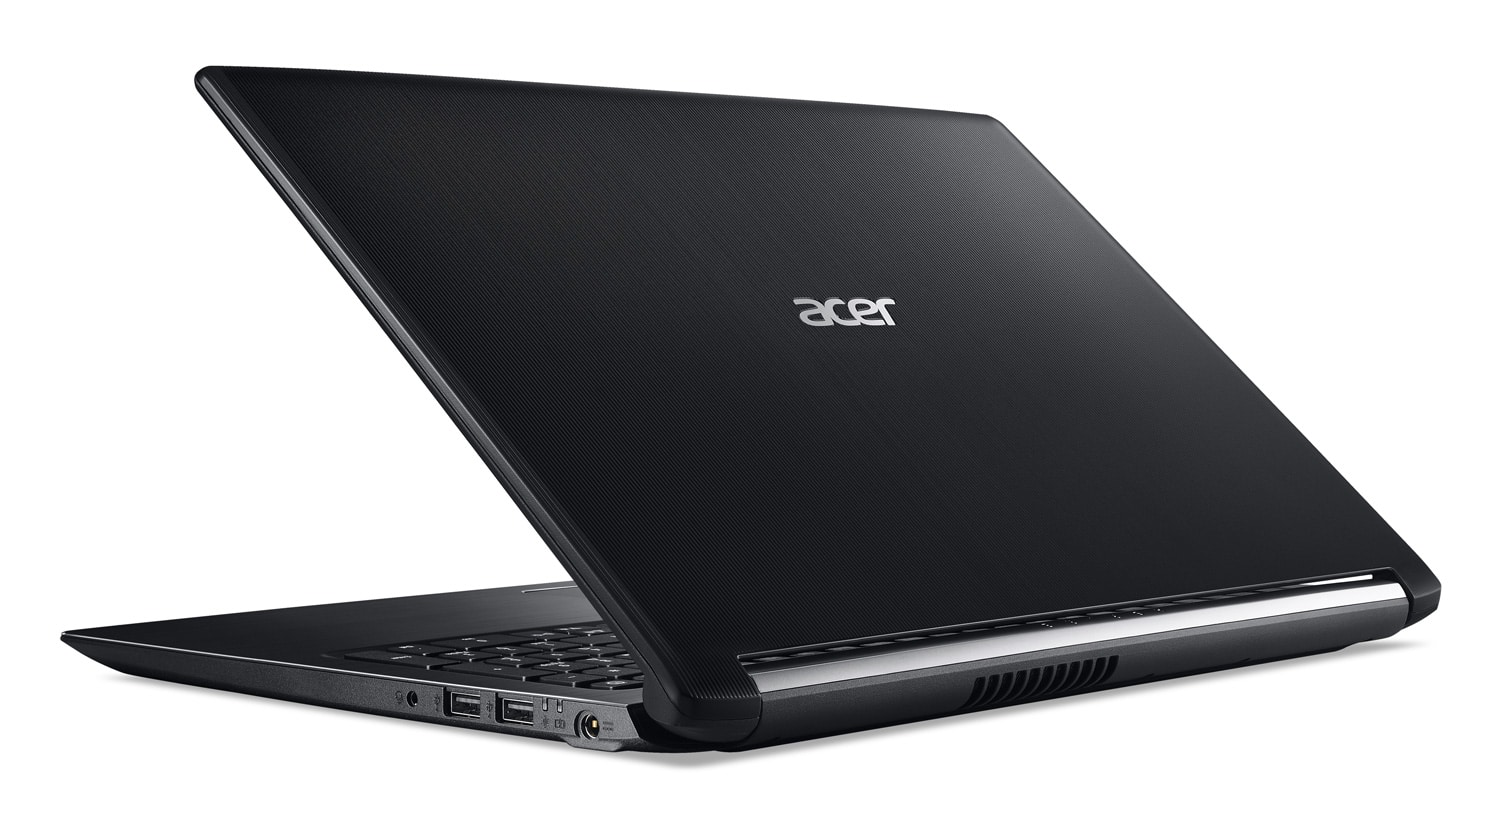 Acer Aspire A515-51G-367N, PC portable 15 pouces MX130 Core i3 (469€)